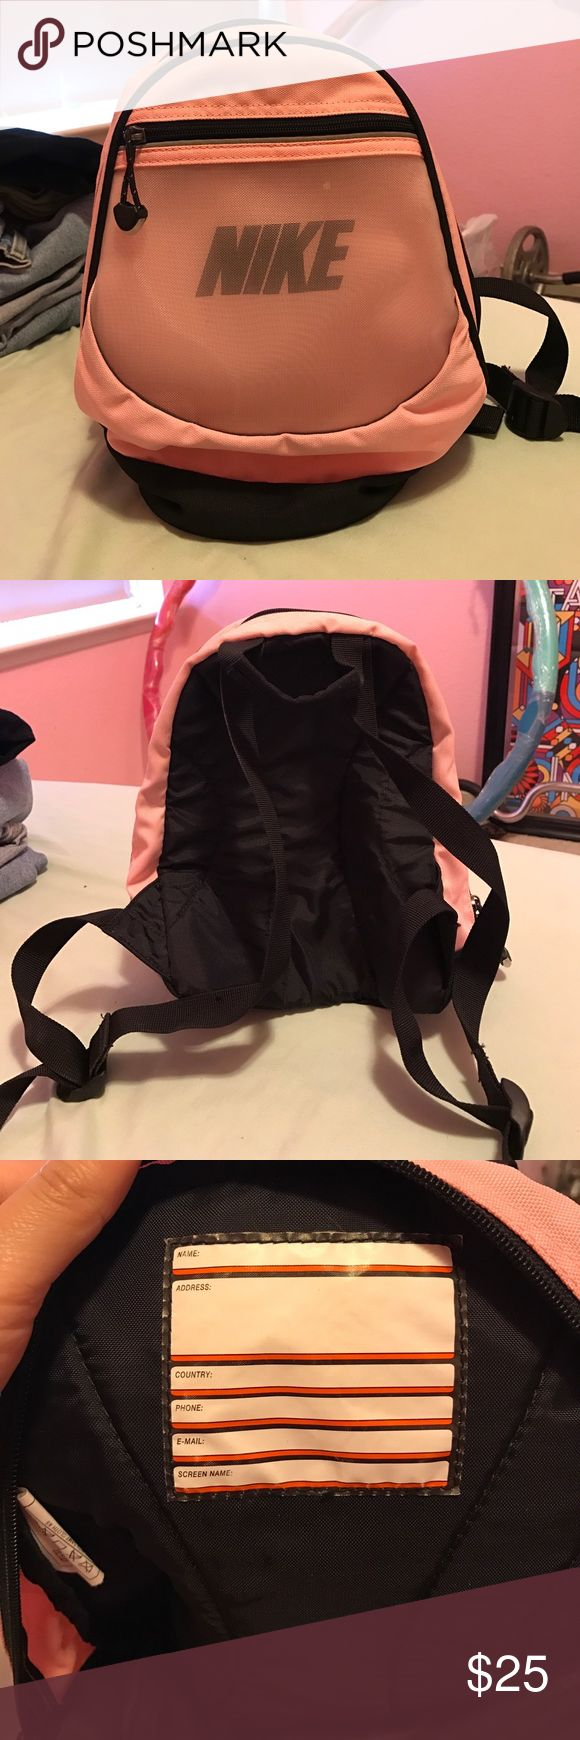 Pink Mini Nike Mesh Backpack Mini pink Nike backpack. Mesh net front pocket. Excellent condition. Hardly used. Nike Bags Backpacks